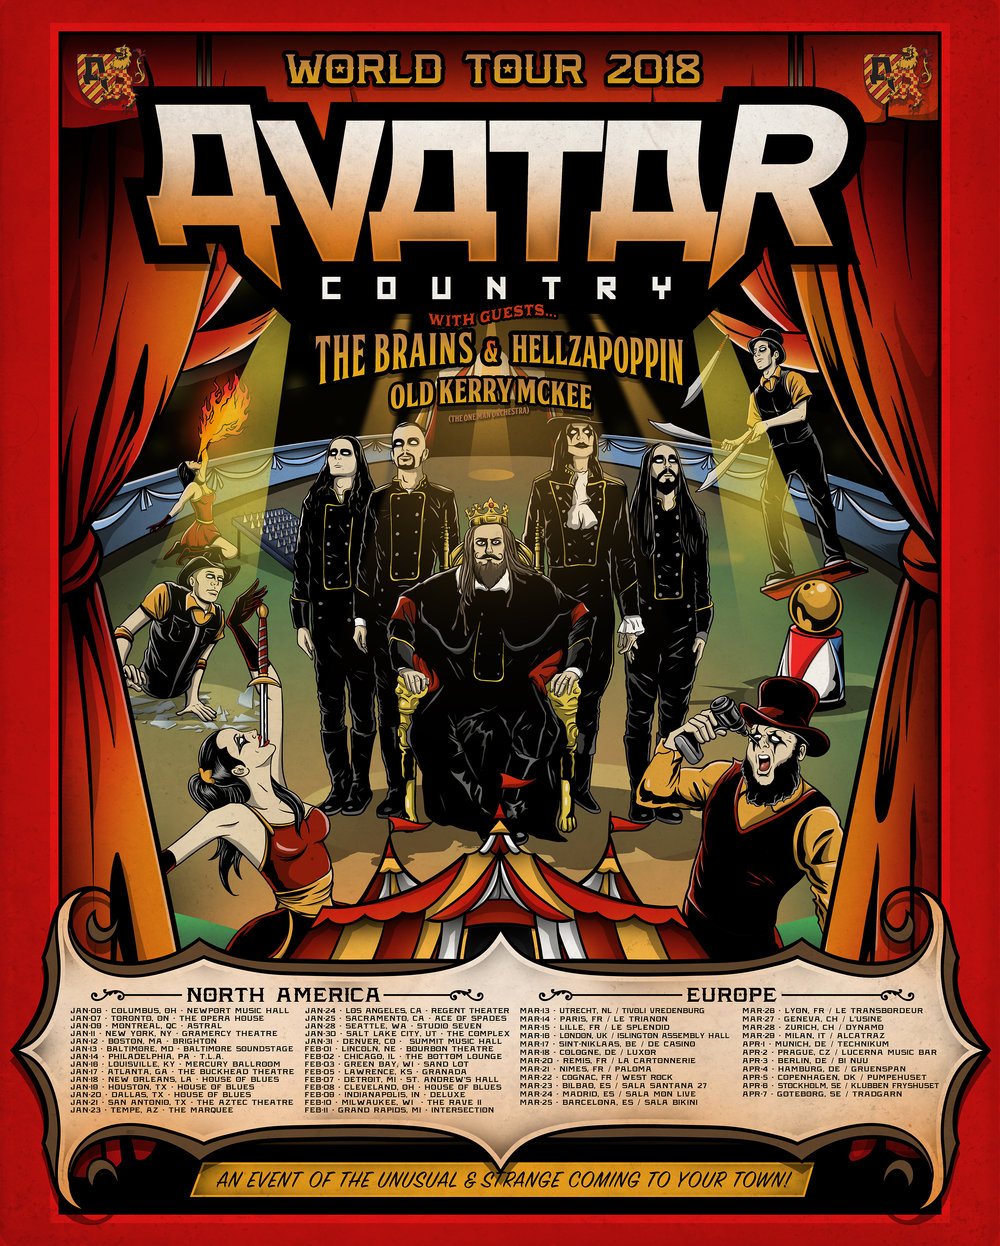 AvatarCountry_World-Tour-1.jpg